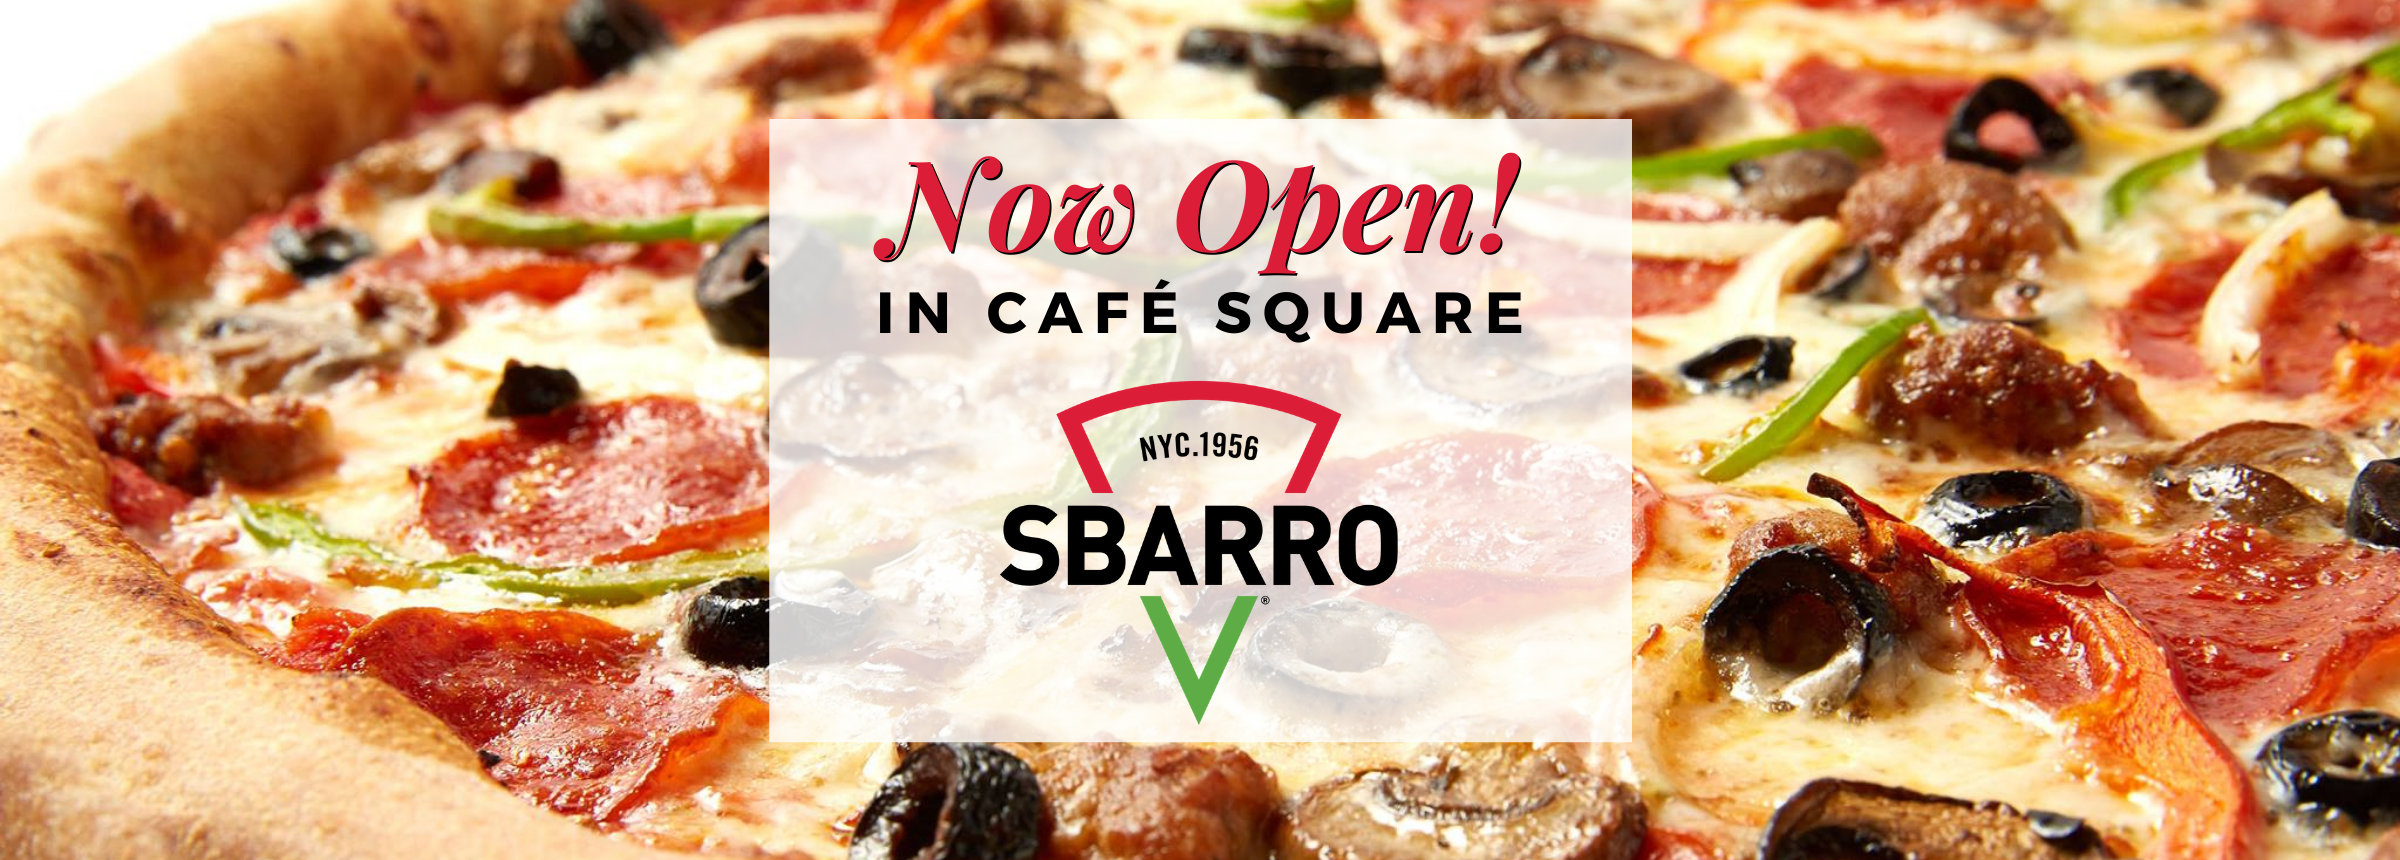 Now Open Website Hero Image Sbarro